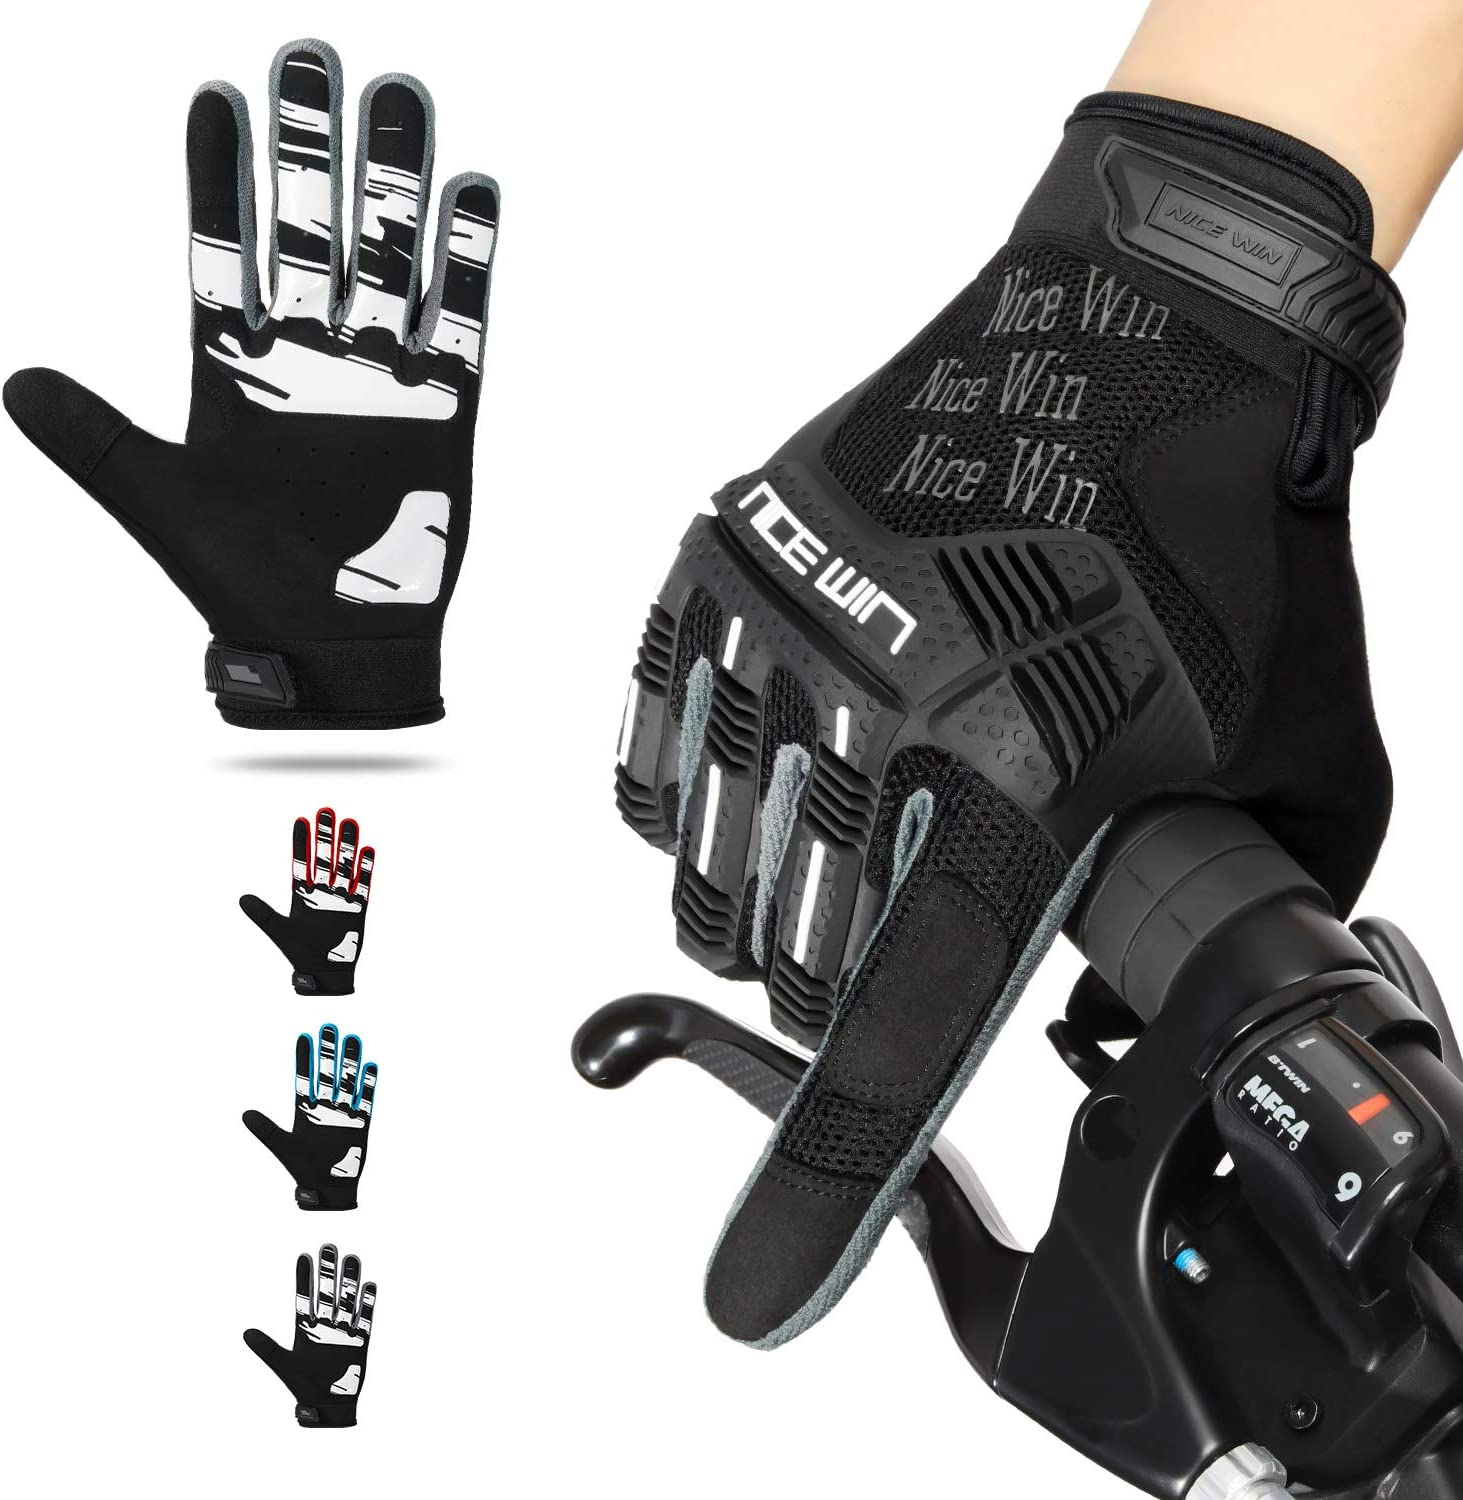 NICEWIN Cycling Gloves Max 52% OFF for Men Finger Anti-Sl Full Riding Max 59% OFF